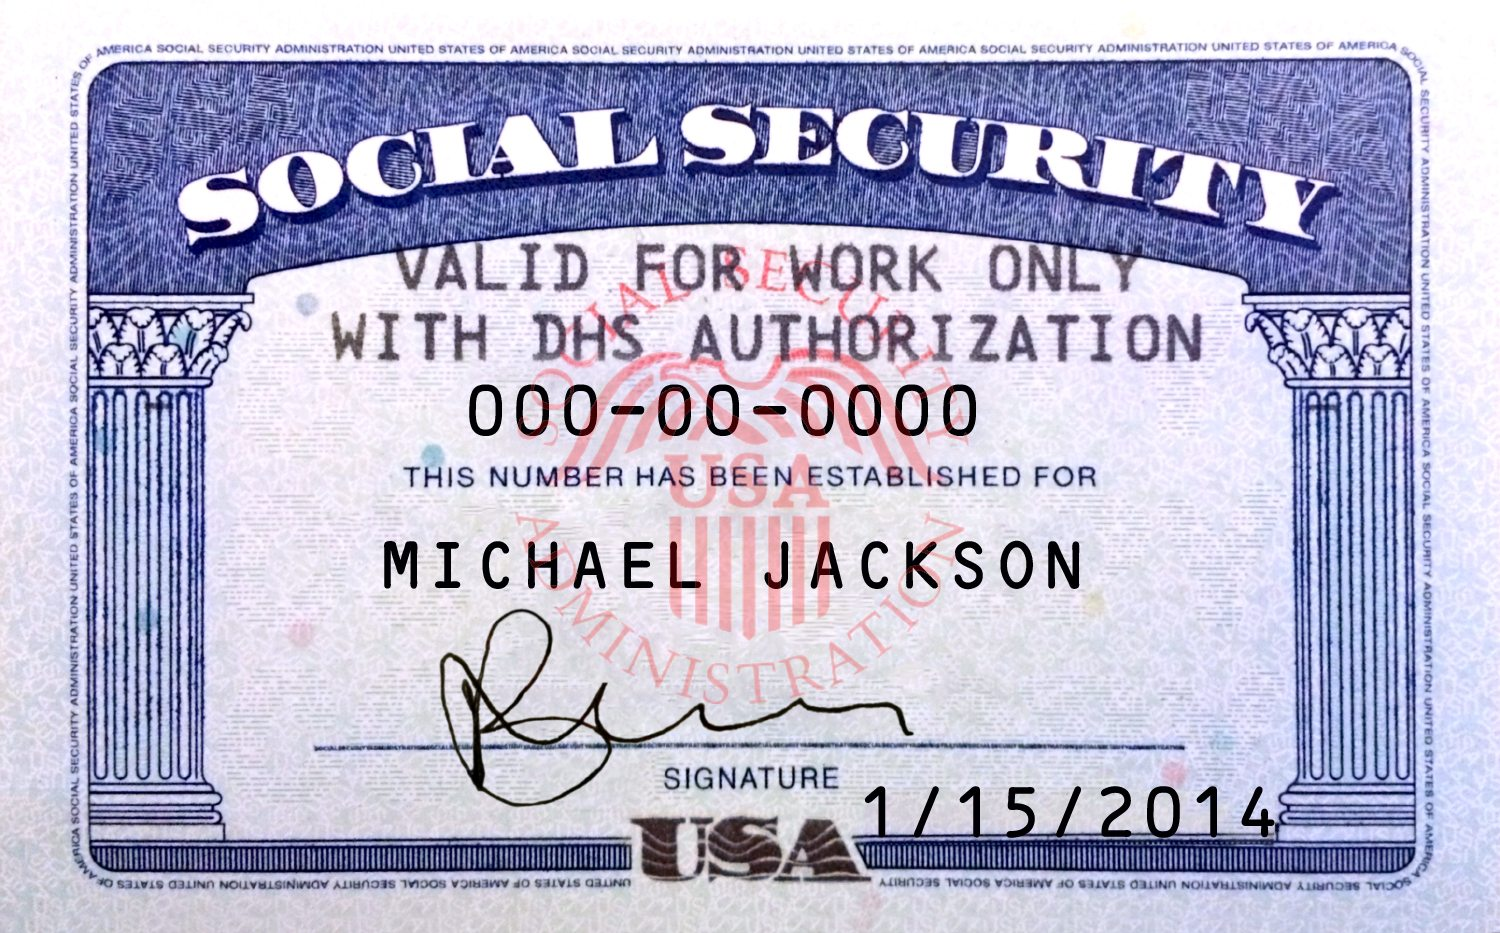 social security card template photoshop us merchant account requirements ssn s amp tin s centrix 24913 | 2017 09 29 fb0be231090c73ccbece250b2572345e